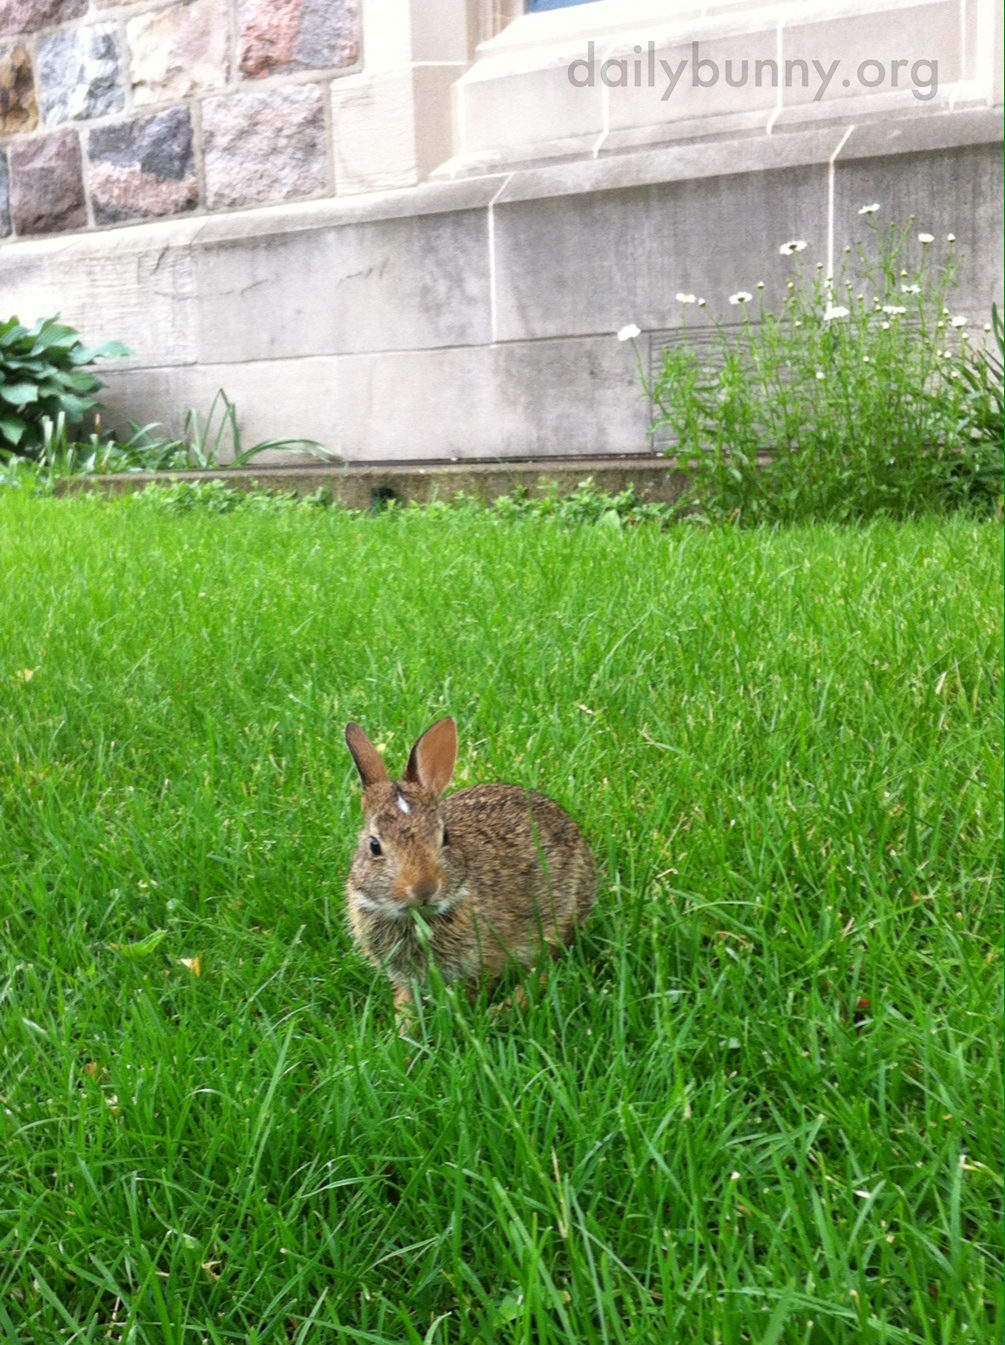 Wild Bunny Stops for a Snack